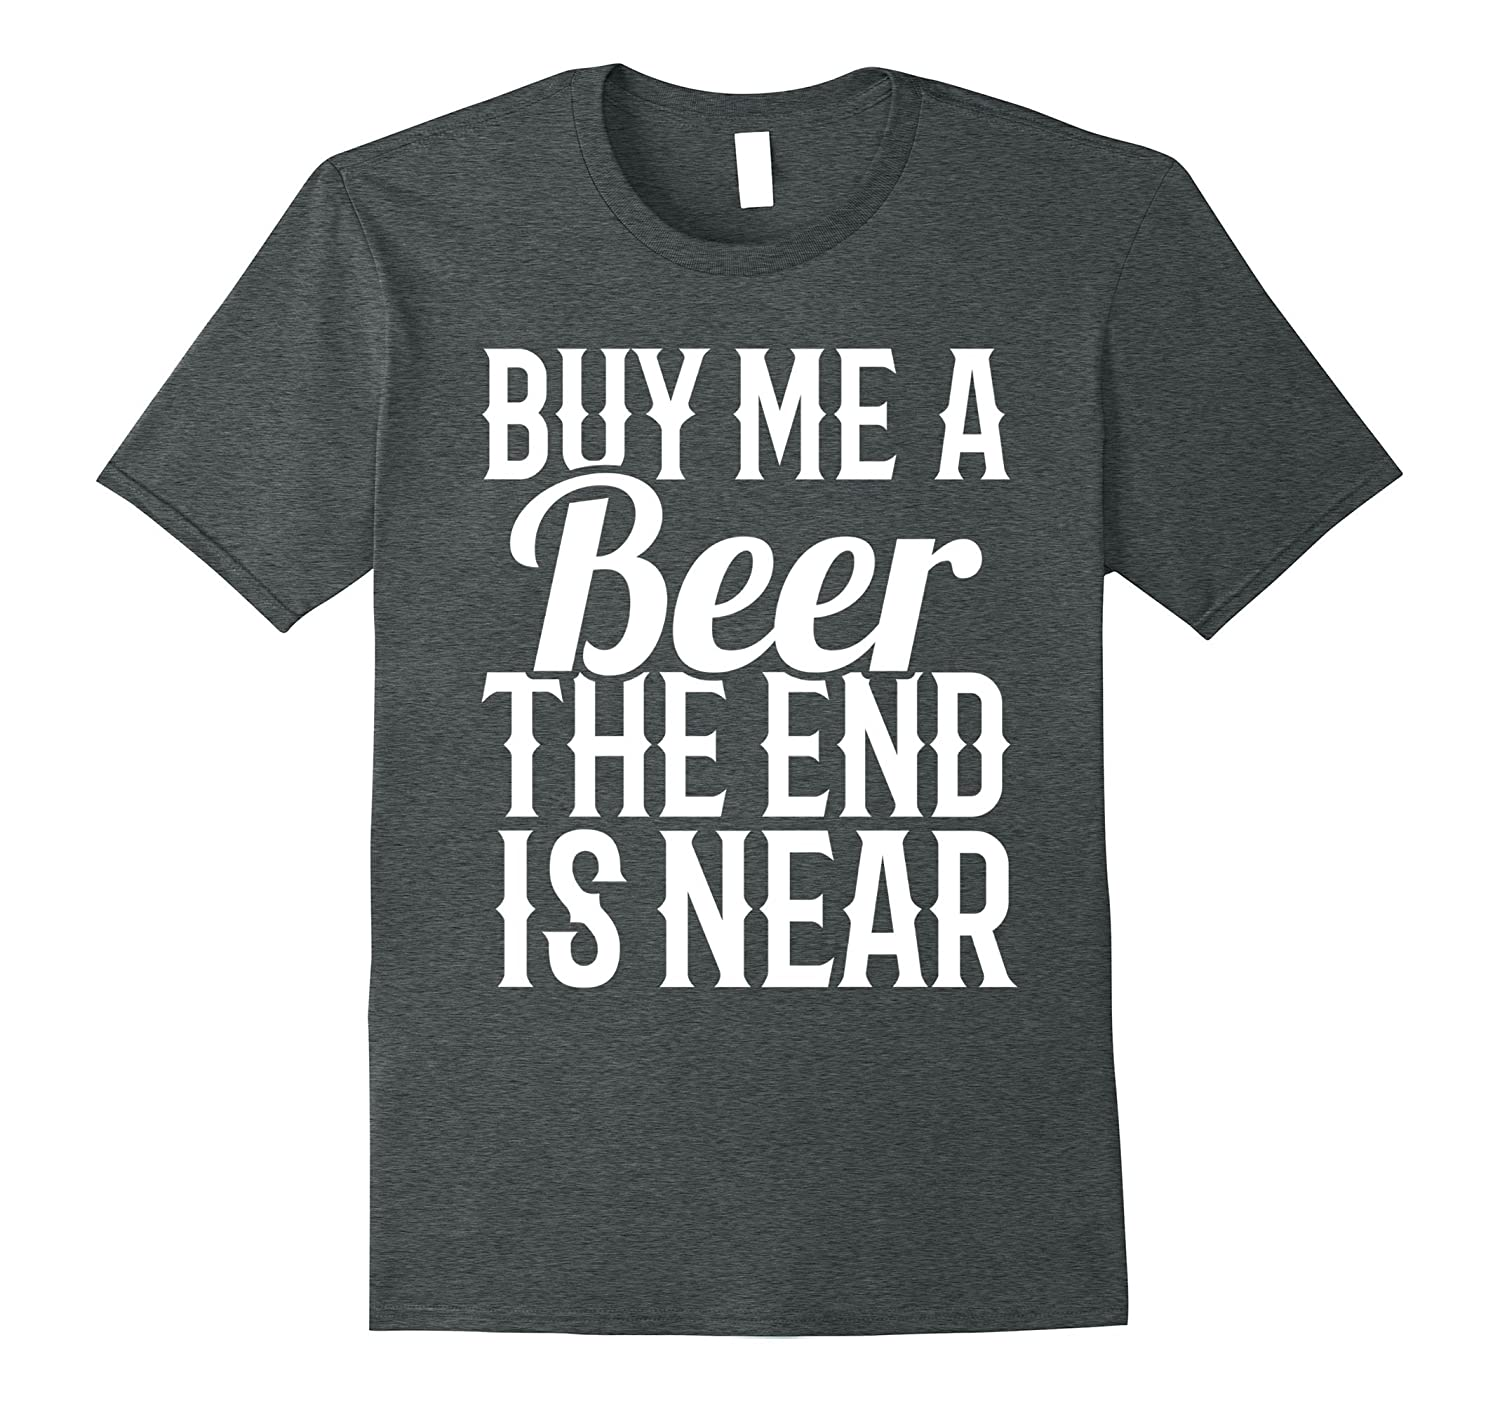 203607ff Buy Me A Beer The End Is Near – Bachelor Groom Party Shirts-BN ...